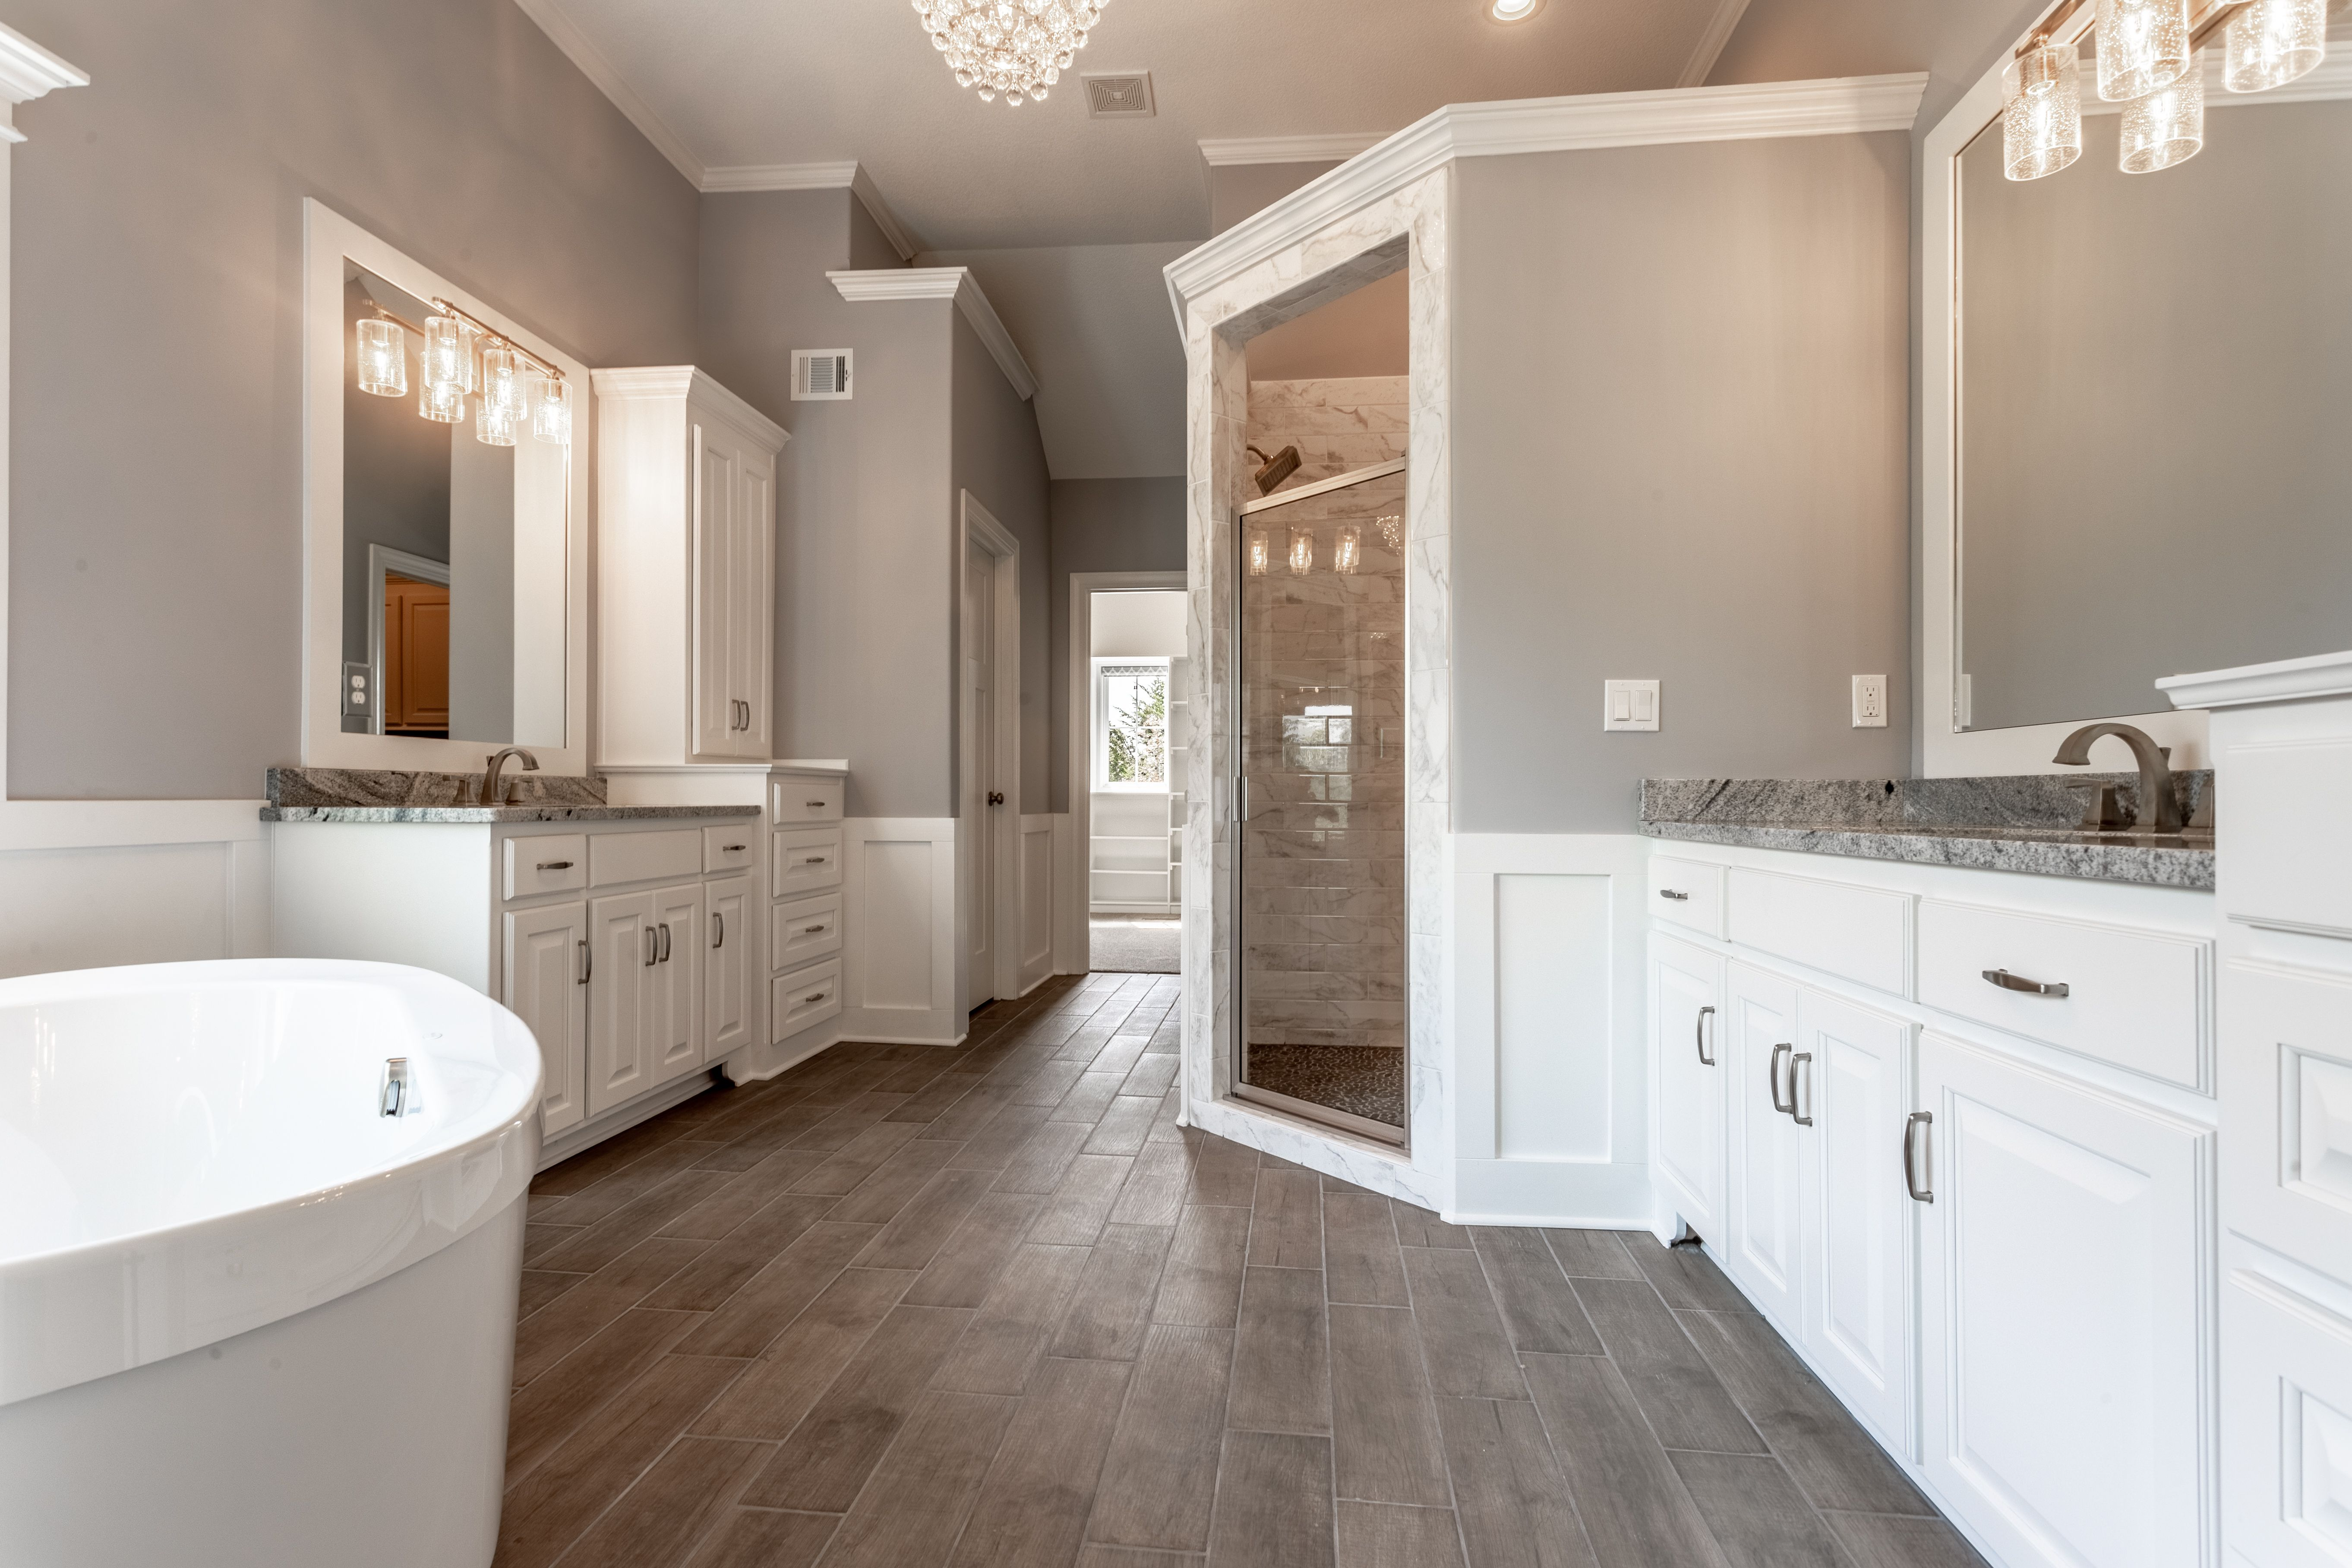 Freestanding Tub White Cabinets Lighting Chandelier Light Fixtures Natural Lighting Wood Tile Floors His And Her V Home Free Standing Tub White Cabinets